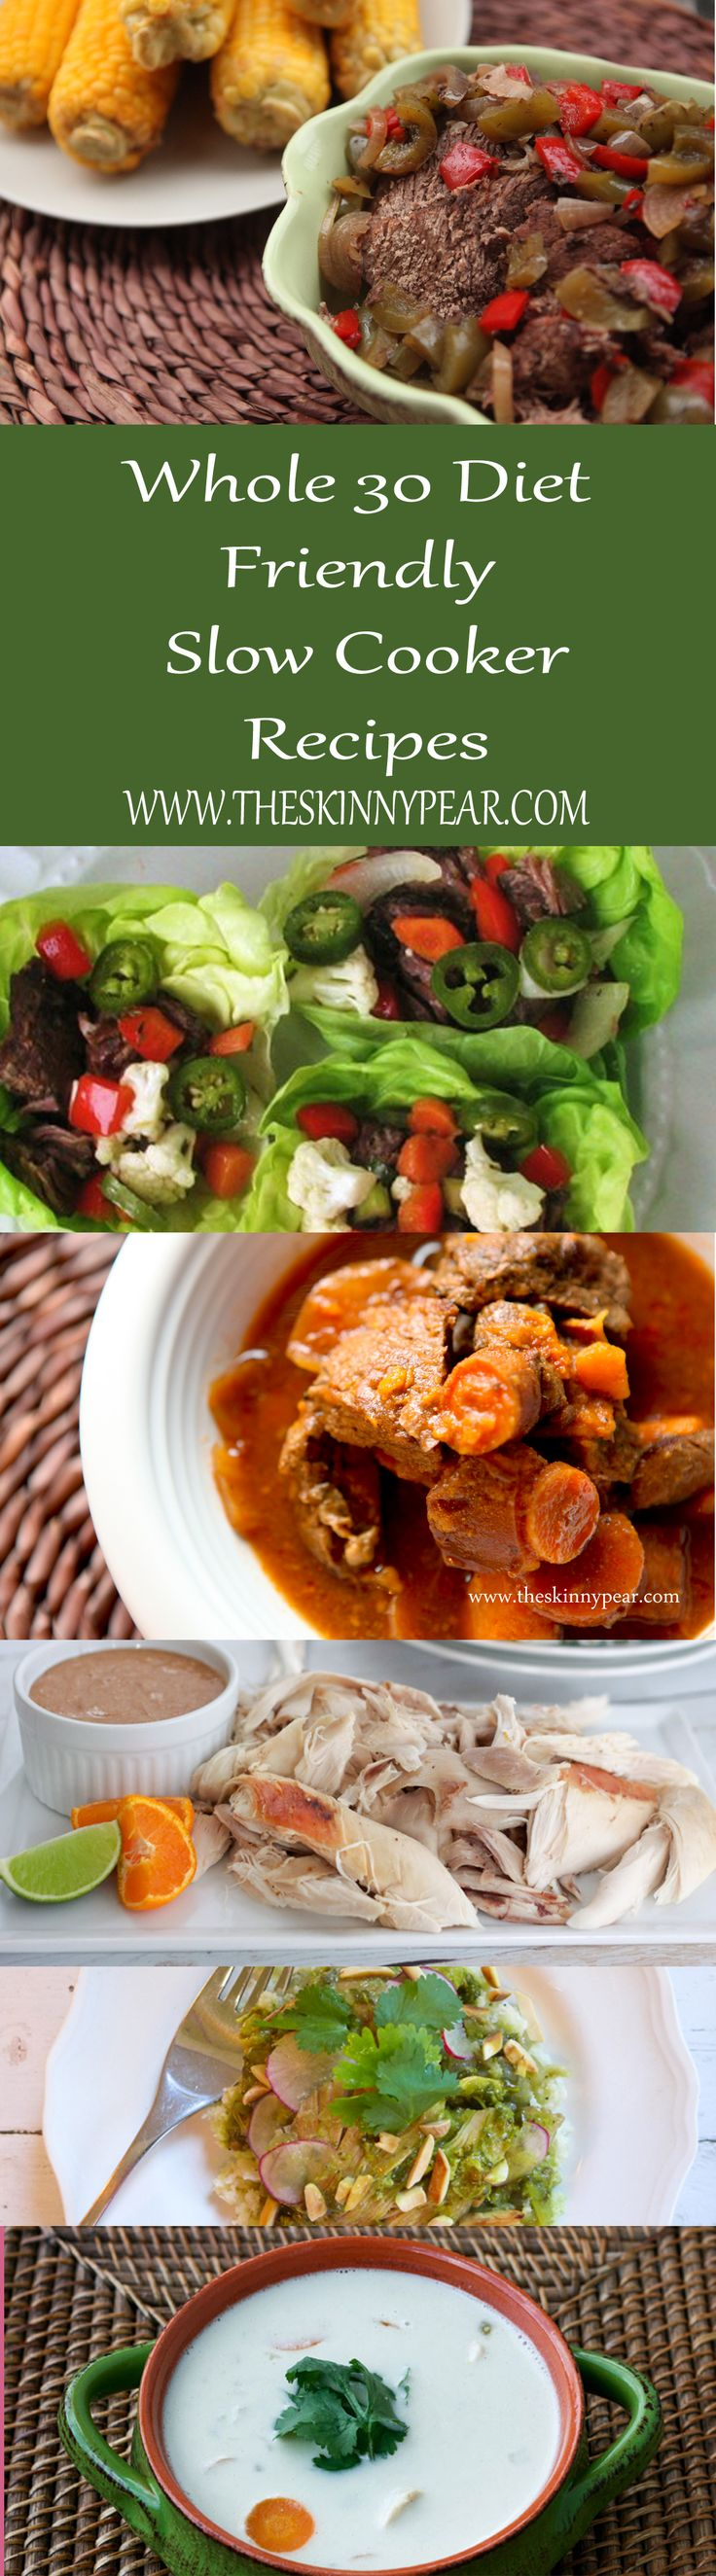 Whole 30 Diet Friendly Slow Cooker Recipes